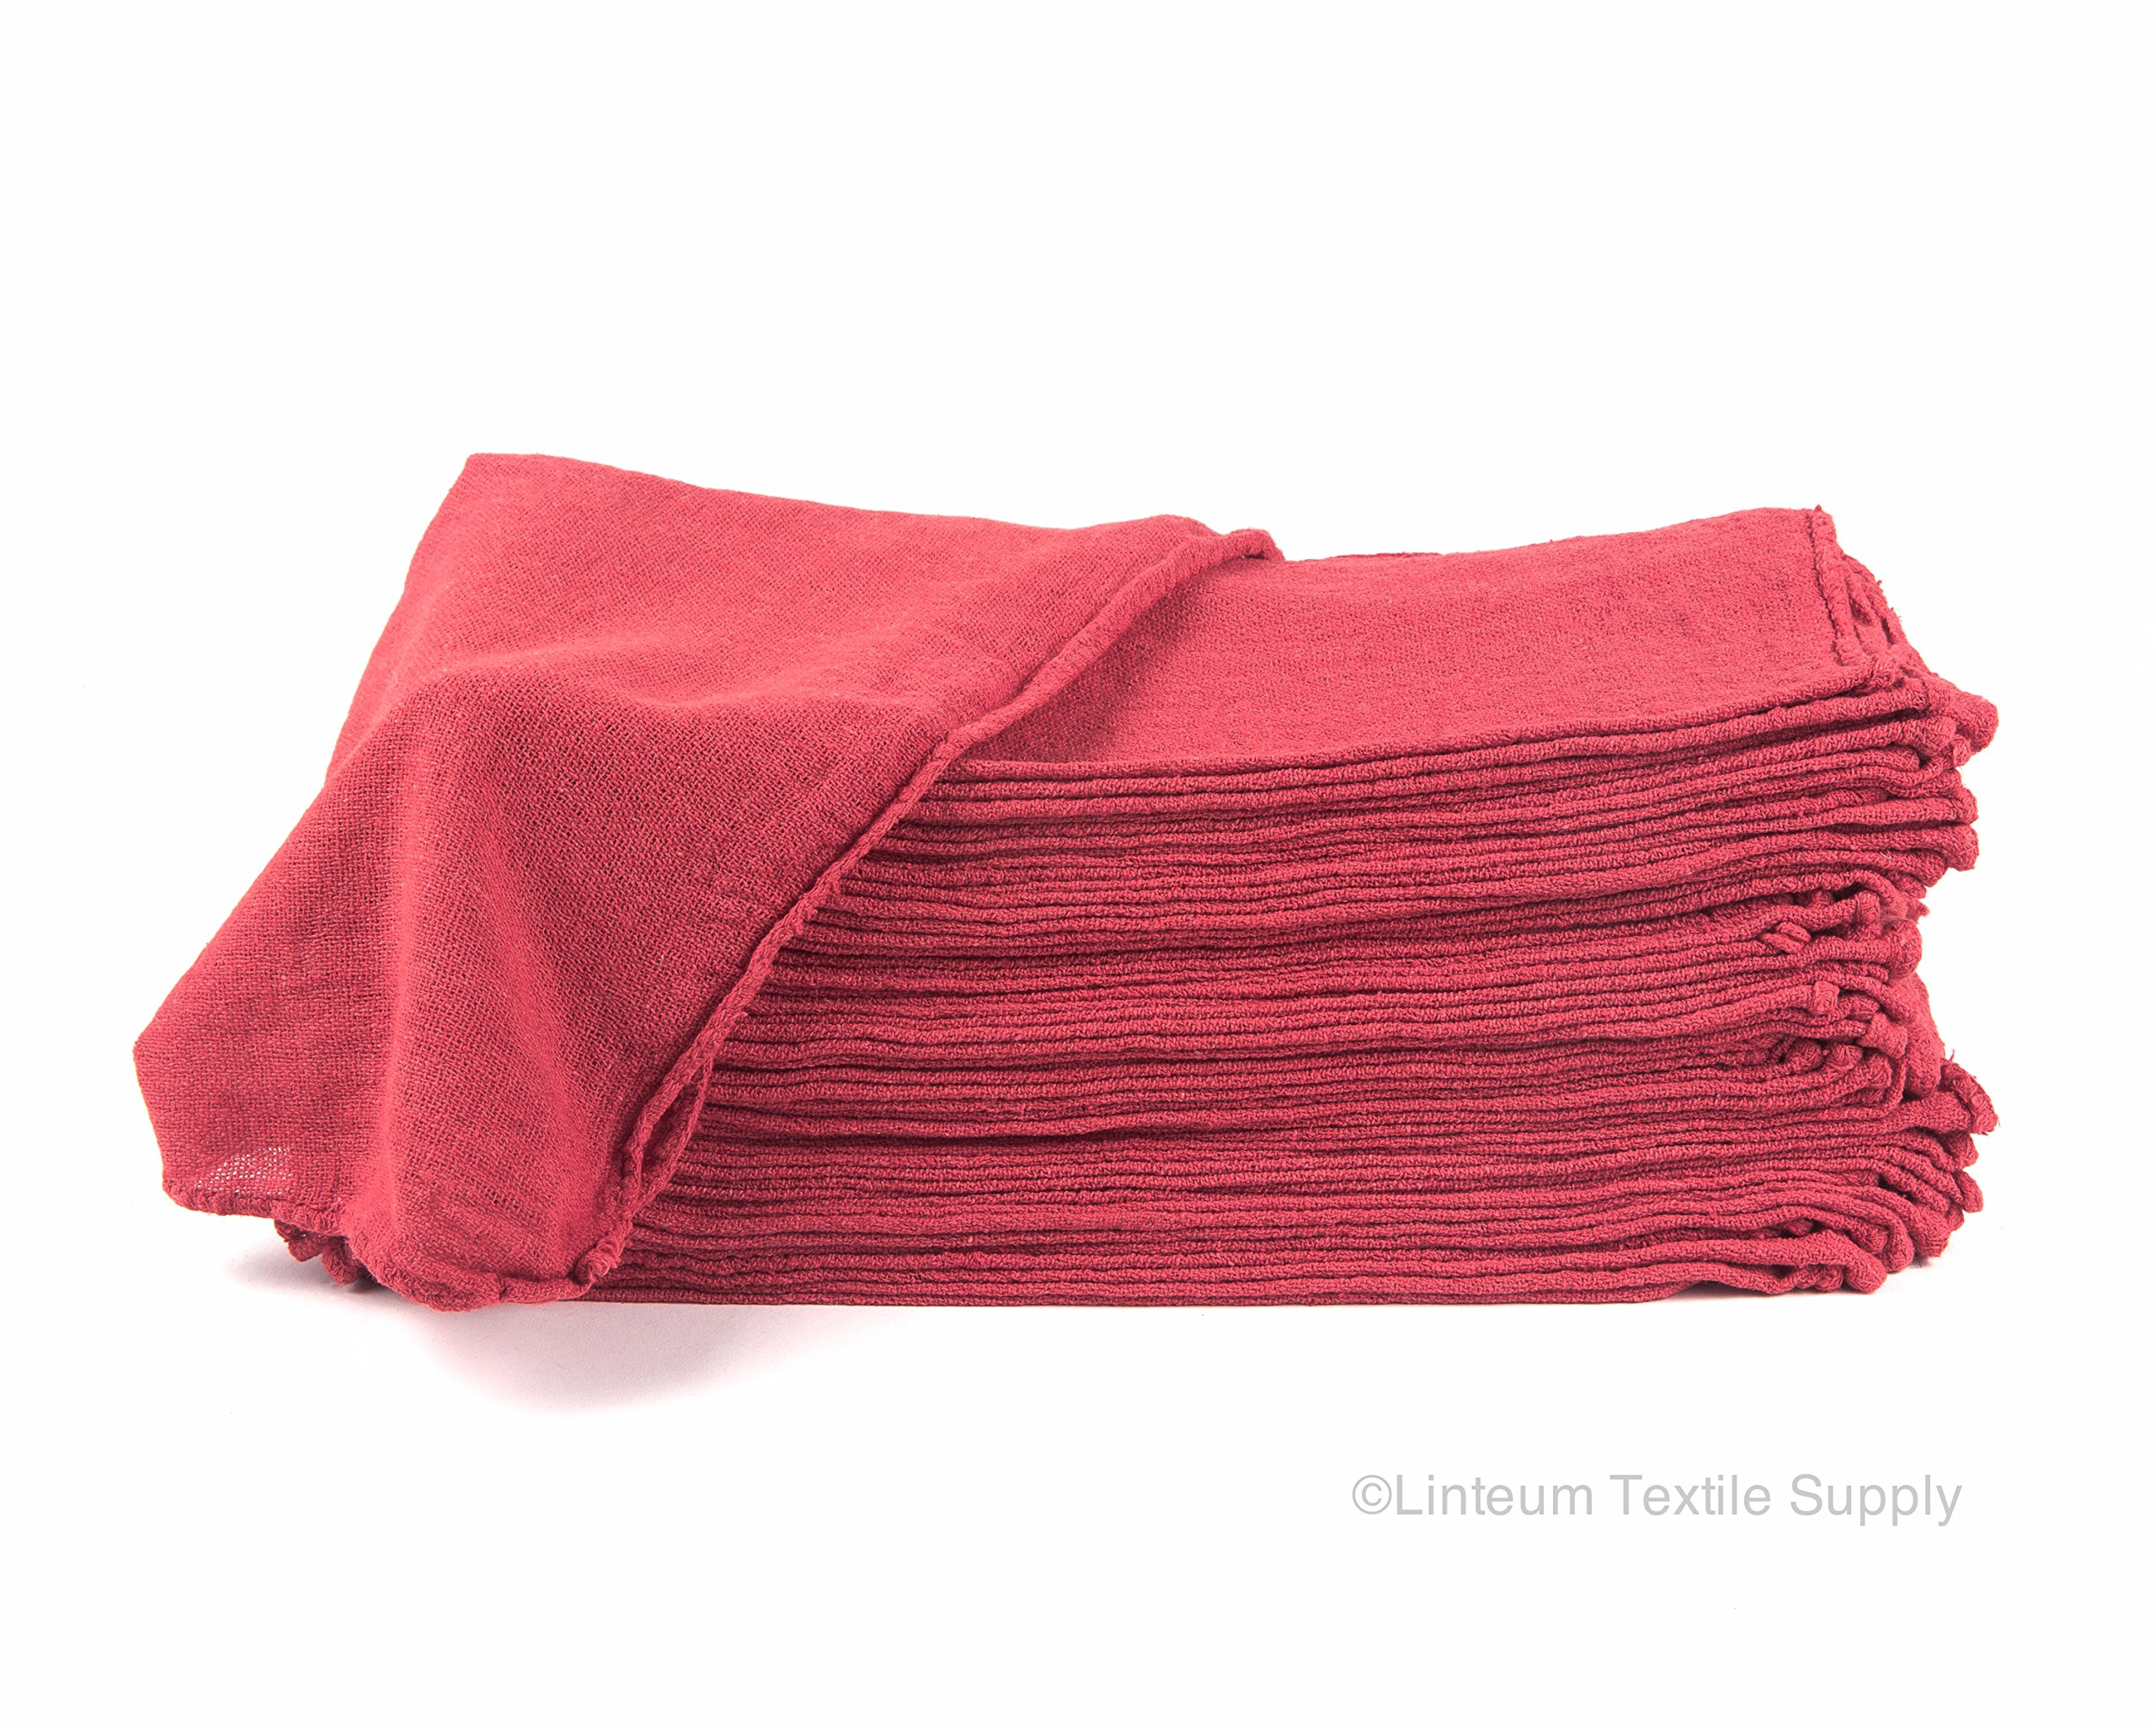 Linteum Textile (100-Pack, 14x14 in, Red) AUTO SHOP TOWEL, 100% Cotton Commercial Grade Rags, Ideal for Auto-Mechanic Cleaning & Detailing